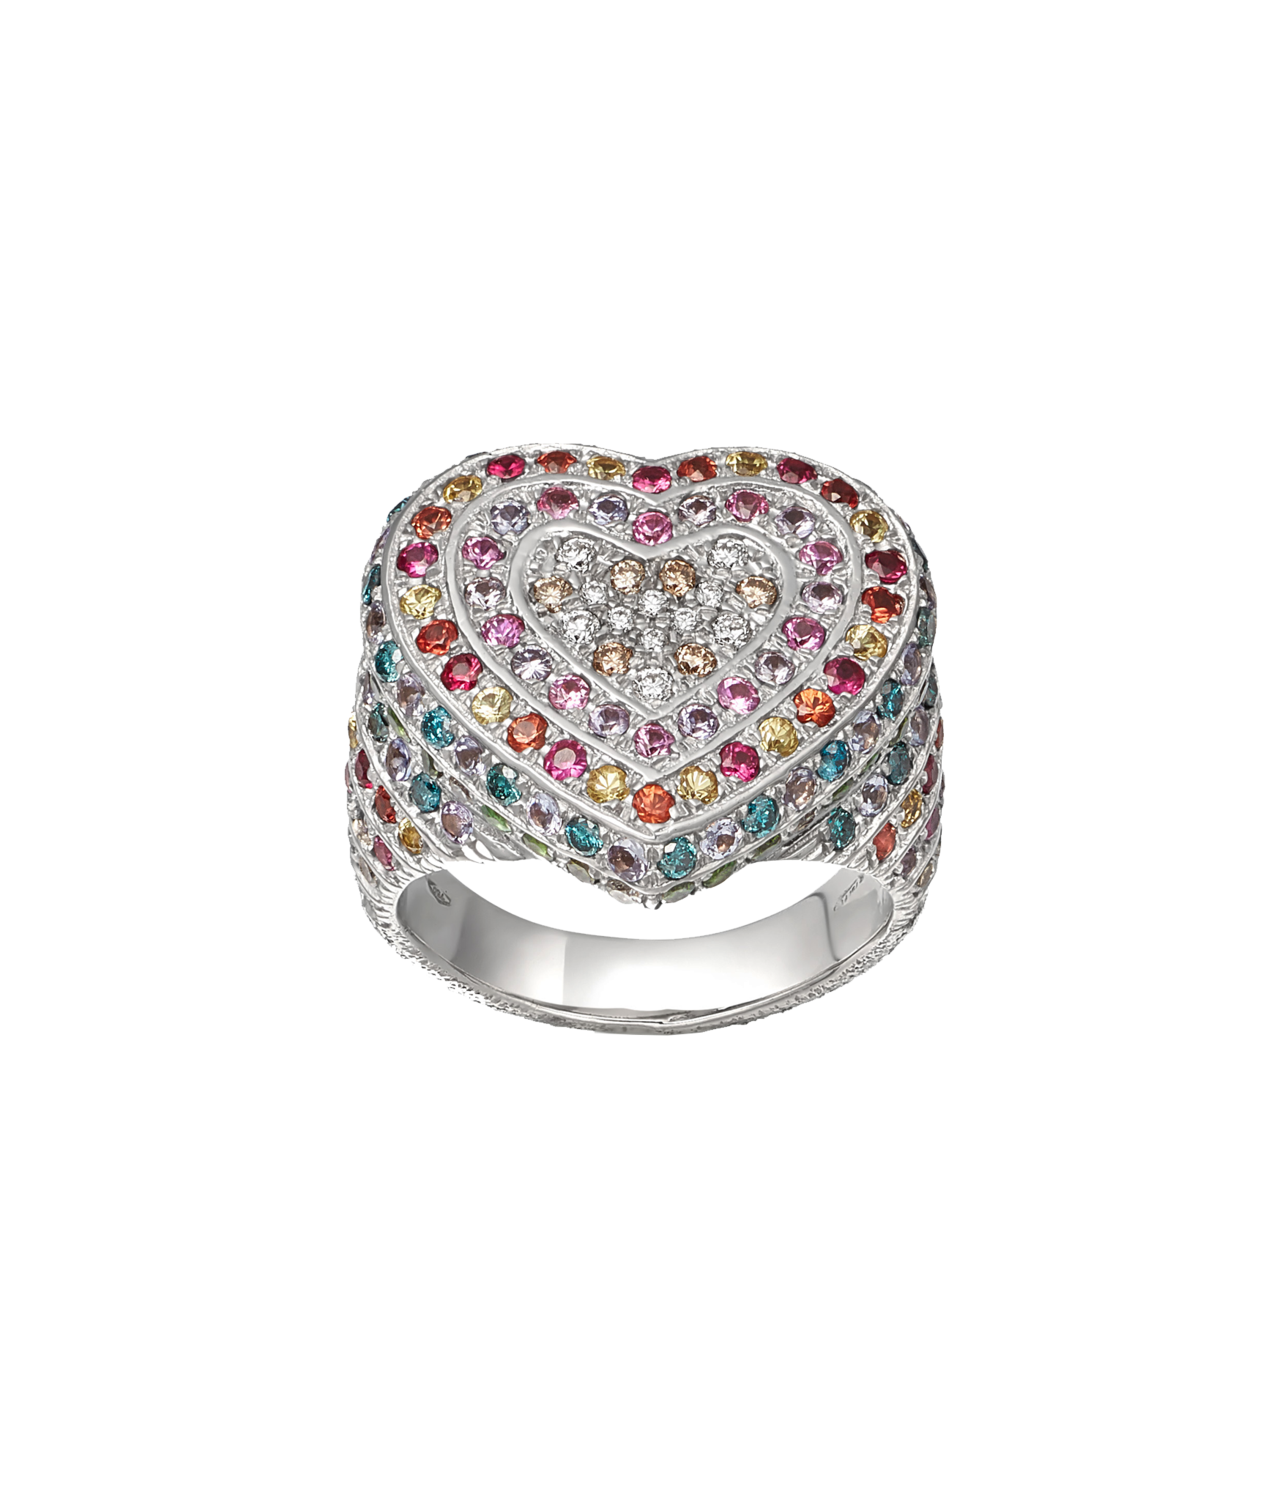 Carolina Bucci Rainbow Pavé Heart Ring in 18k White Gold